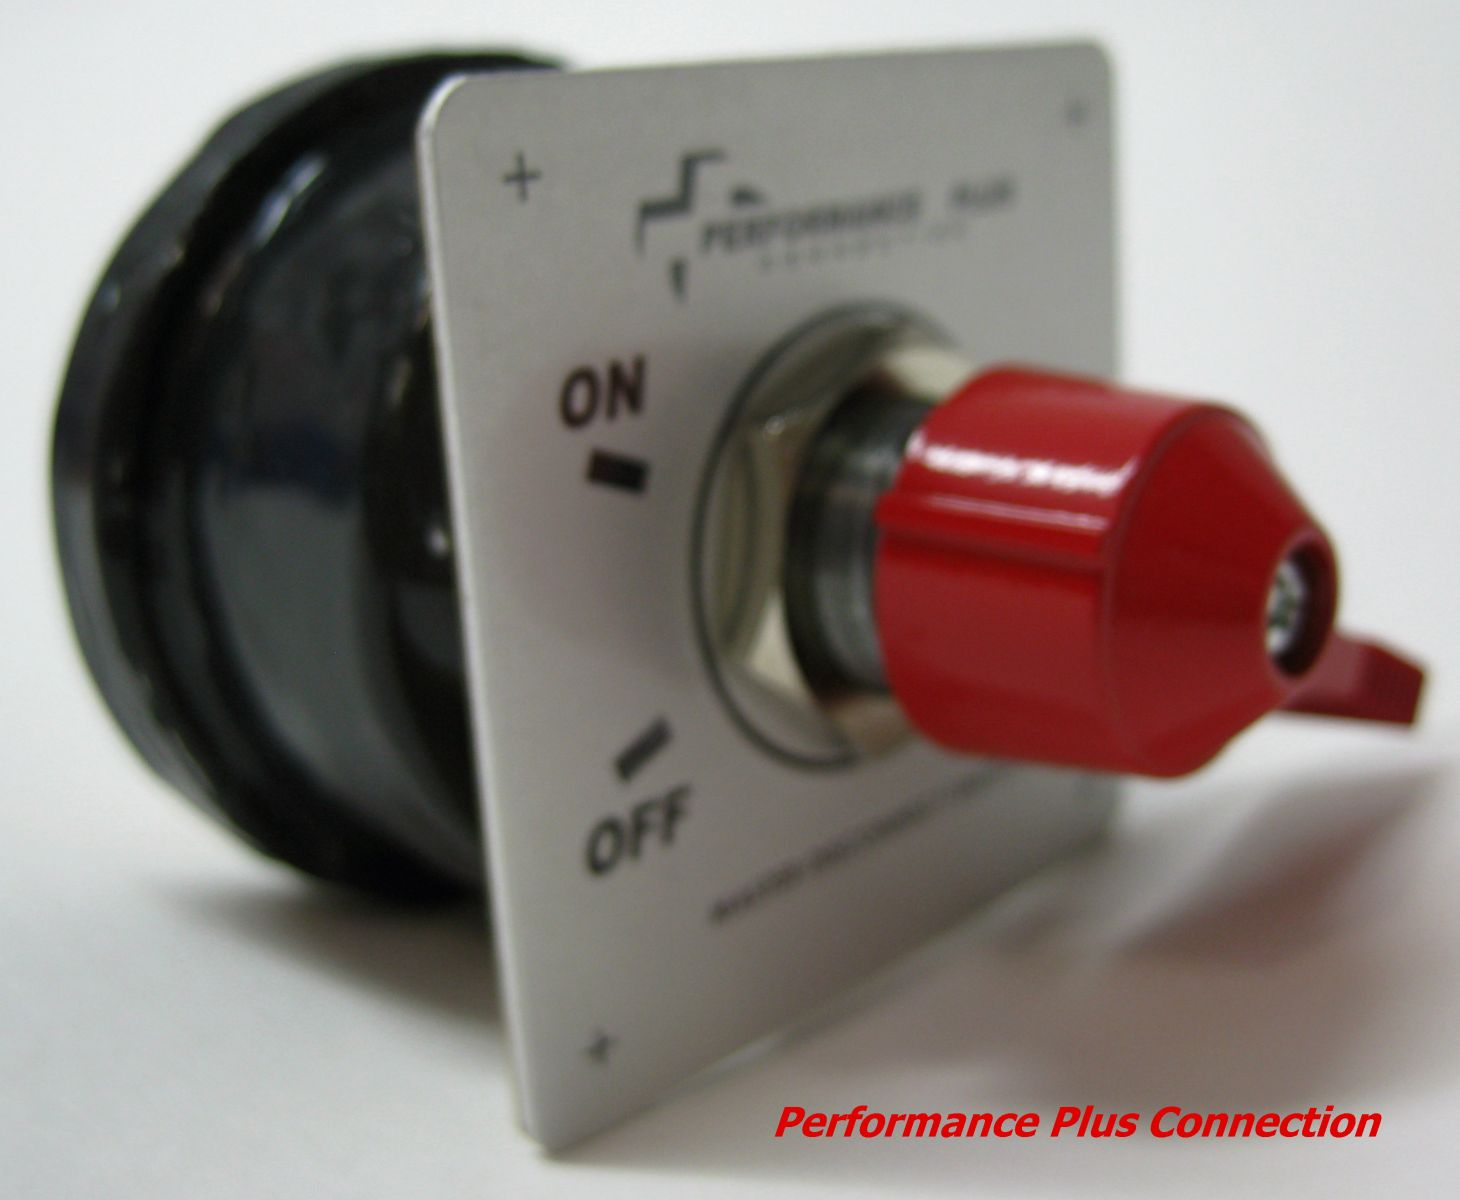 Performance Plus Connection Switches Hotrod Hotline